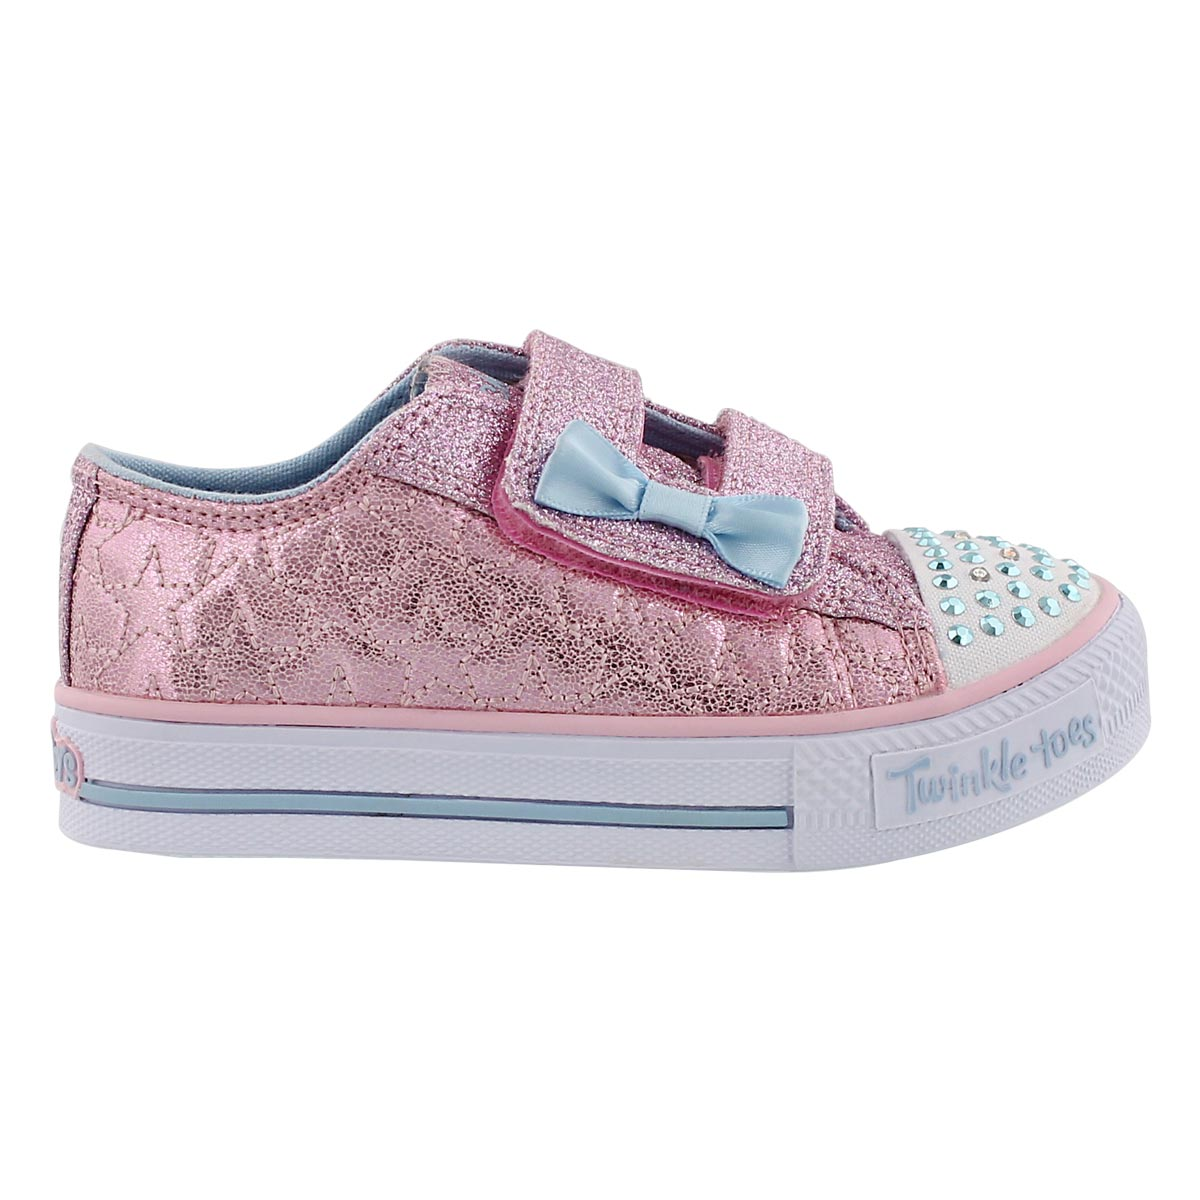 Inf Starlight Style pink/blue sneaker